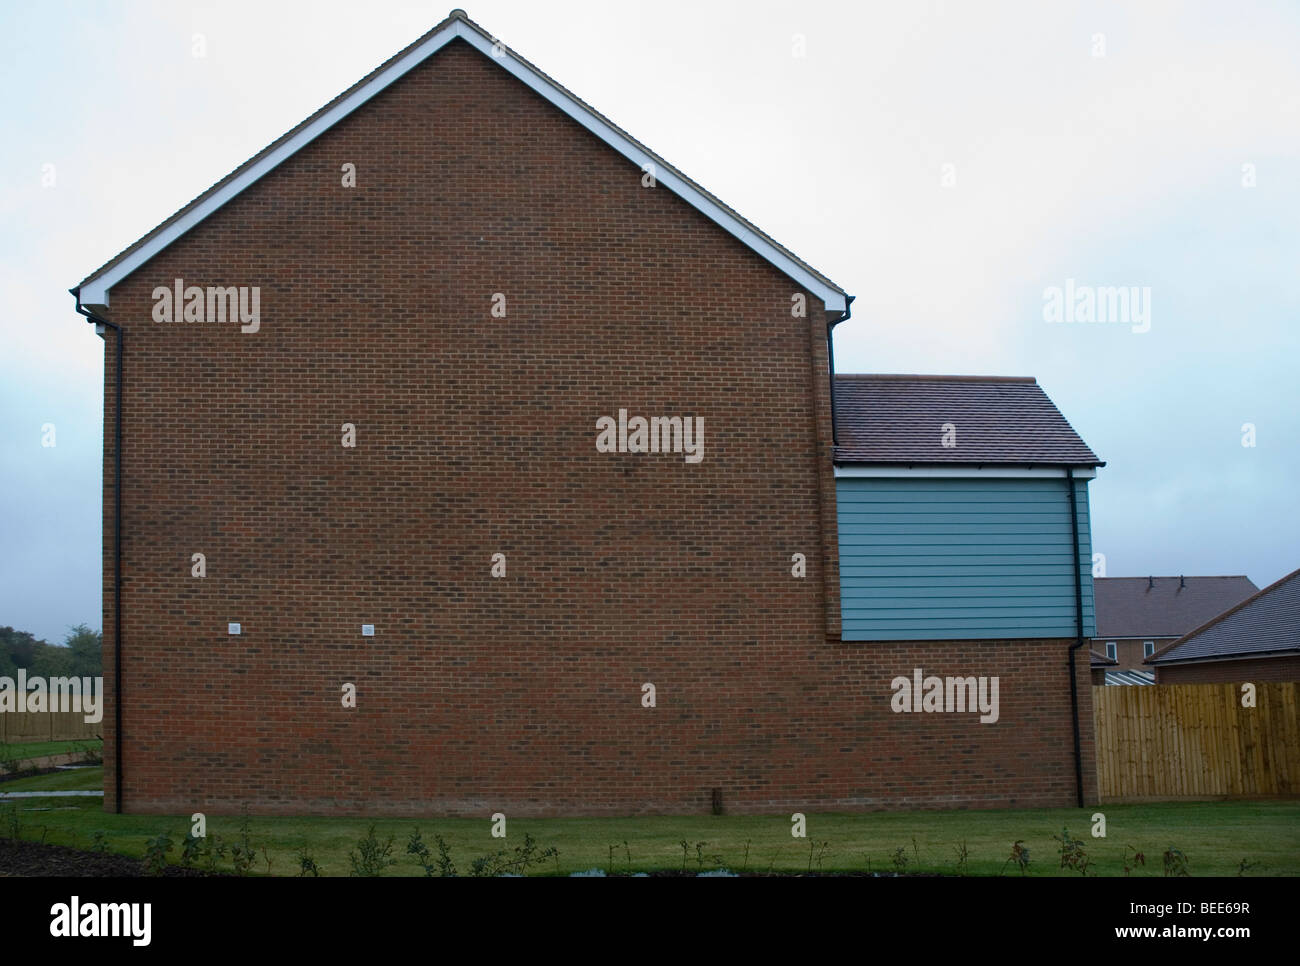 house gable end for sale - Stock Image